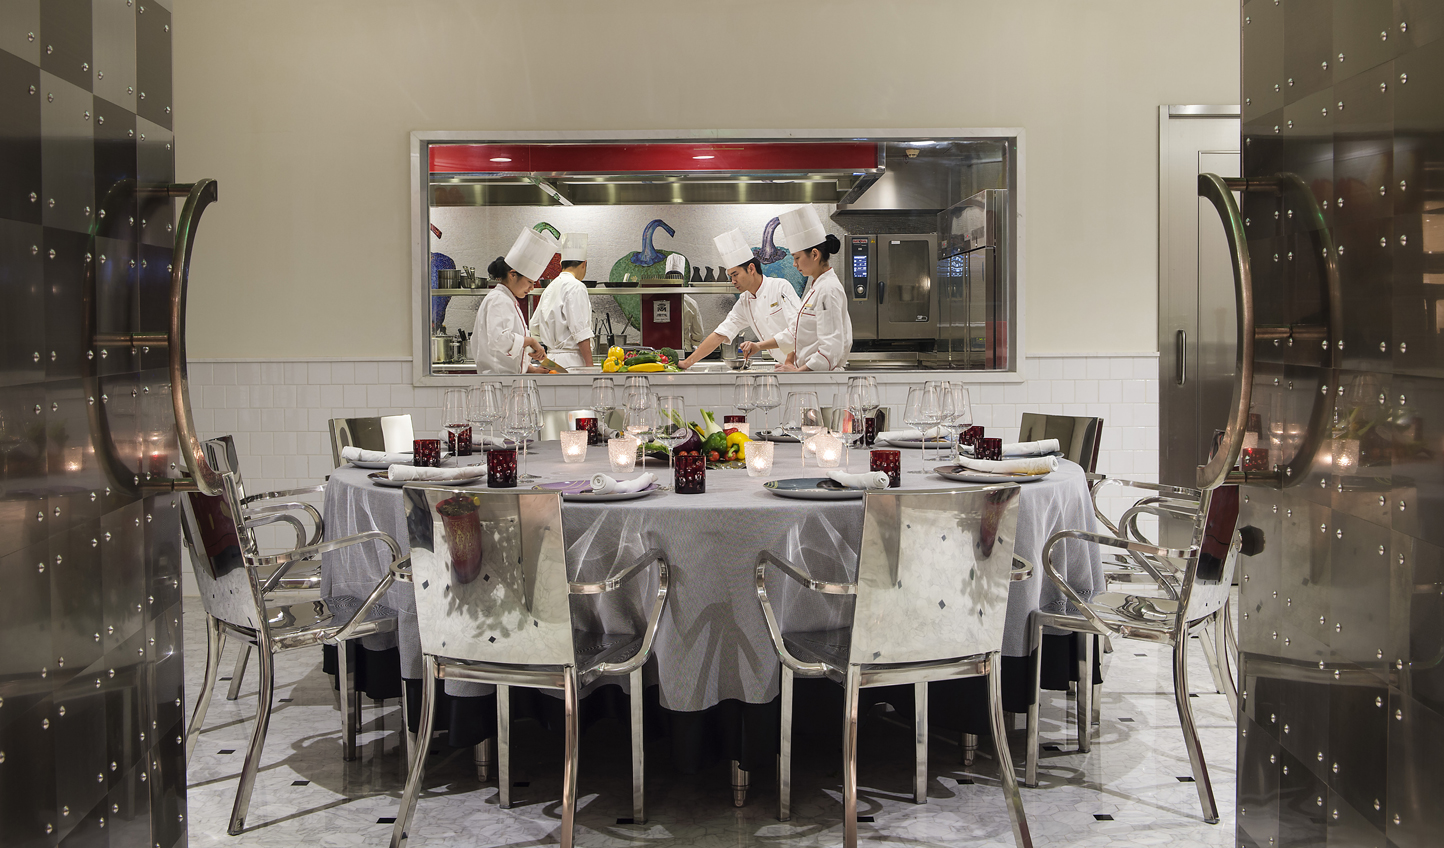 Watch the chefs in action from the Chef's Table